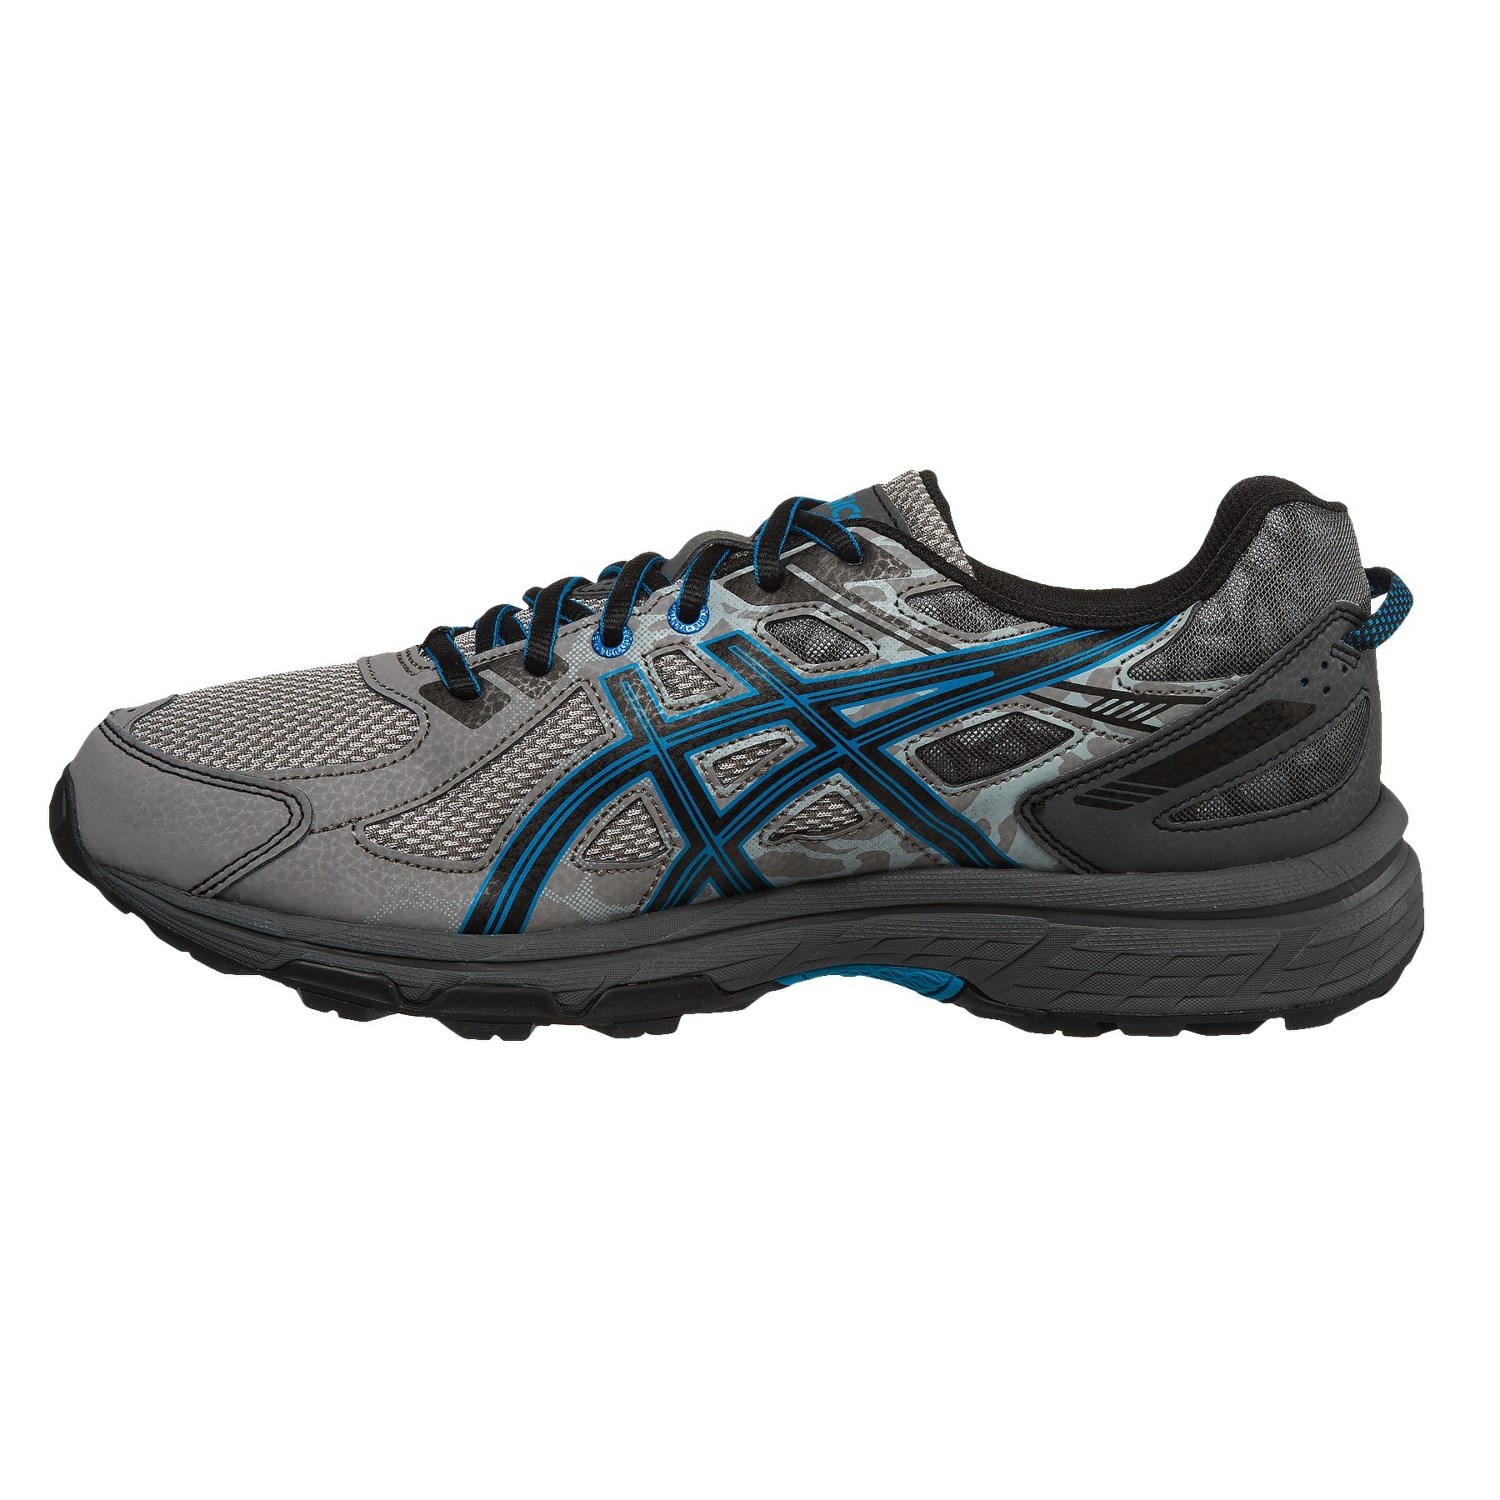 Asics Gel Venture  Trail Running Shoes Review